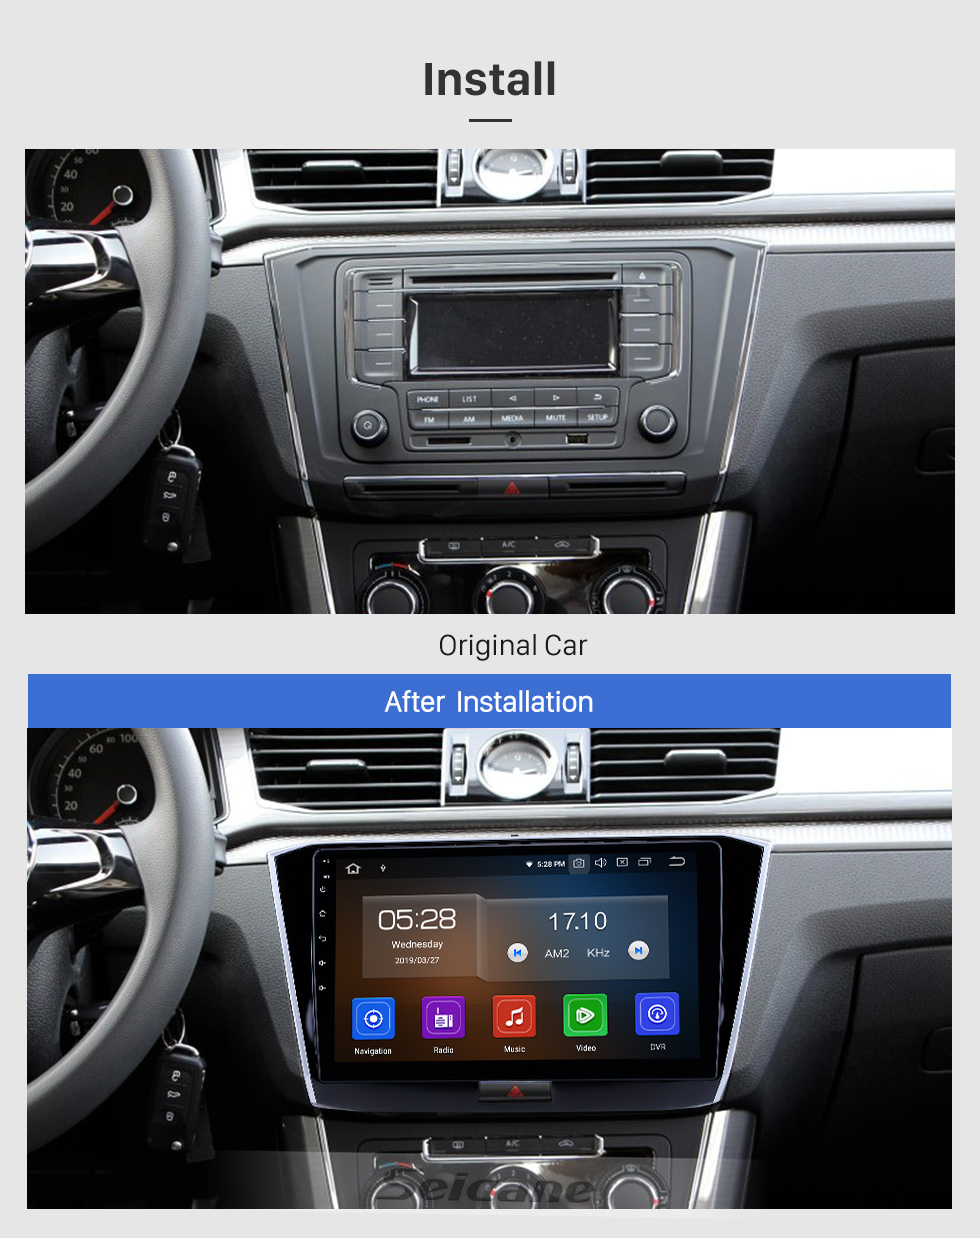 Seicane 10.1 inch Android 8.1 GPS Navigation Radio for 2016-2018 VW Volkswagen Passat with HD Touchscreen Bluetooth USB support Carplay TPMS